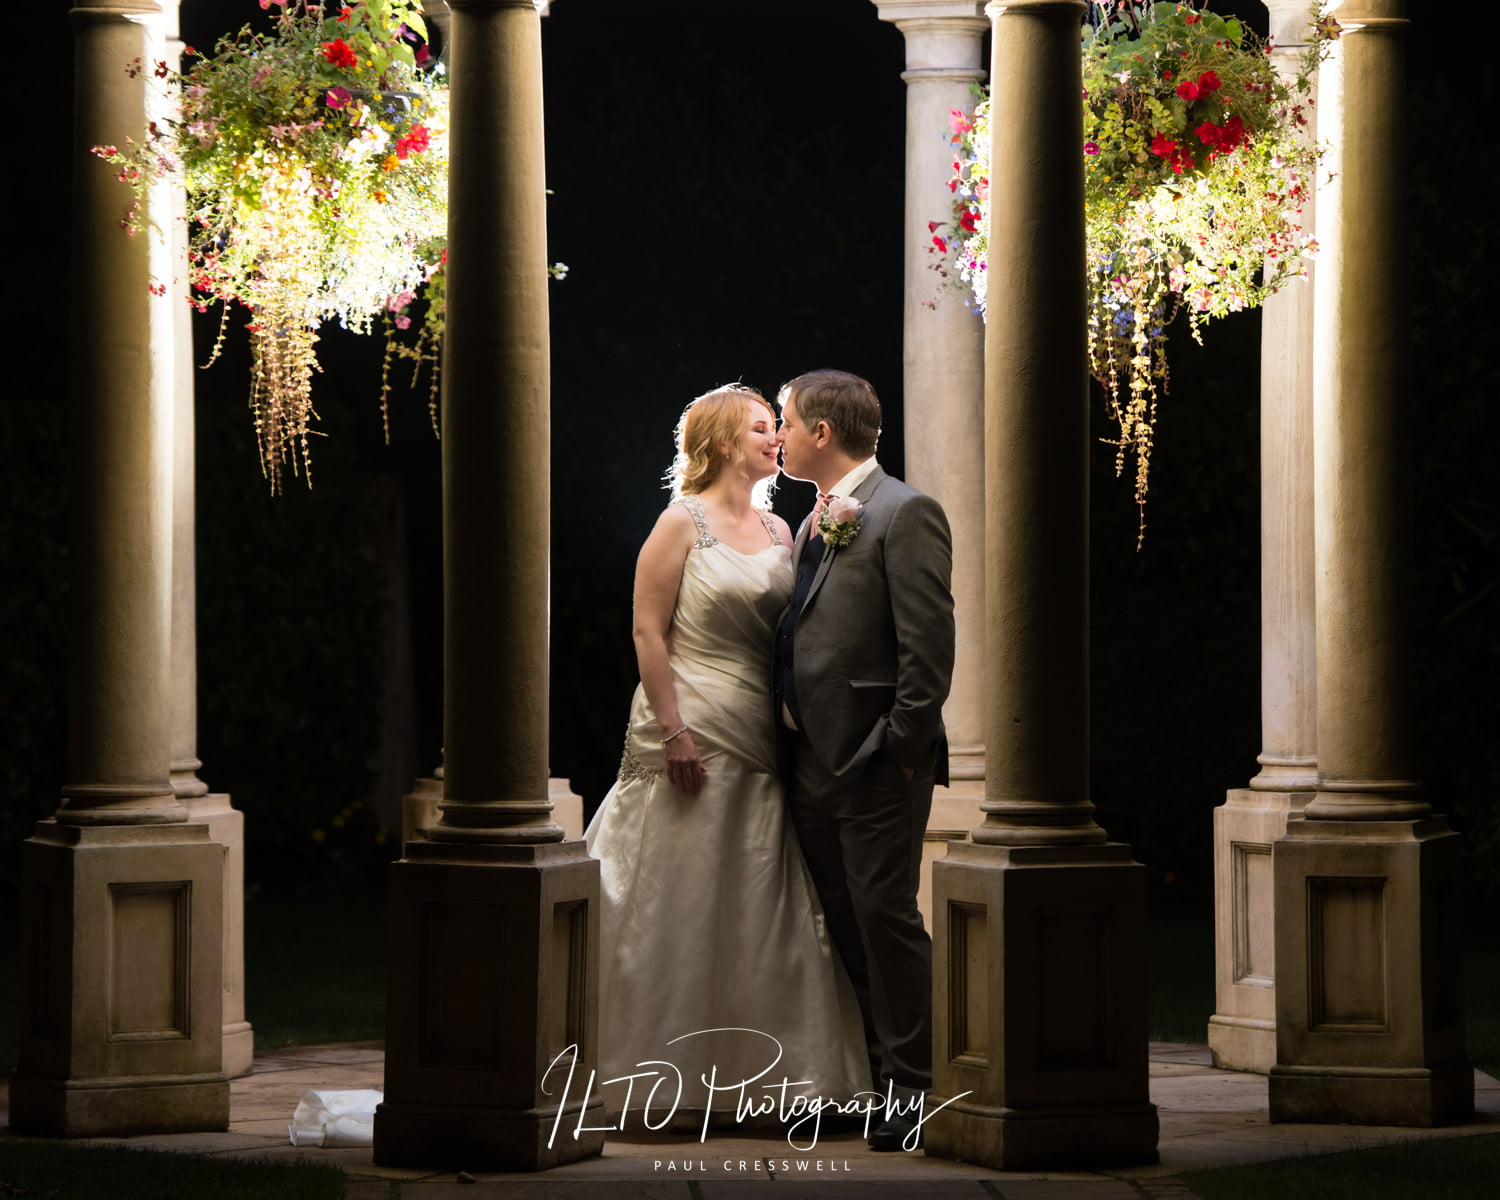 Rogerthorpe Manor Wedding Photographer, West Yorkshire Wedding photographer